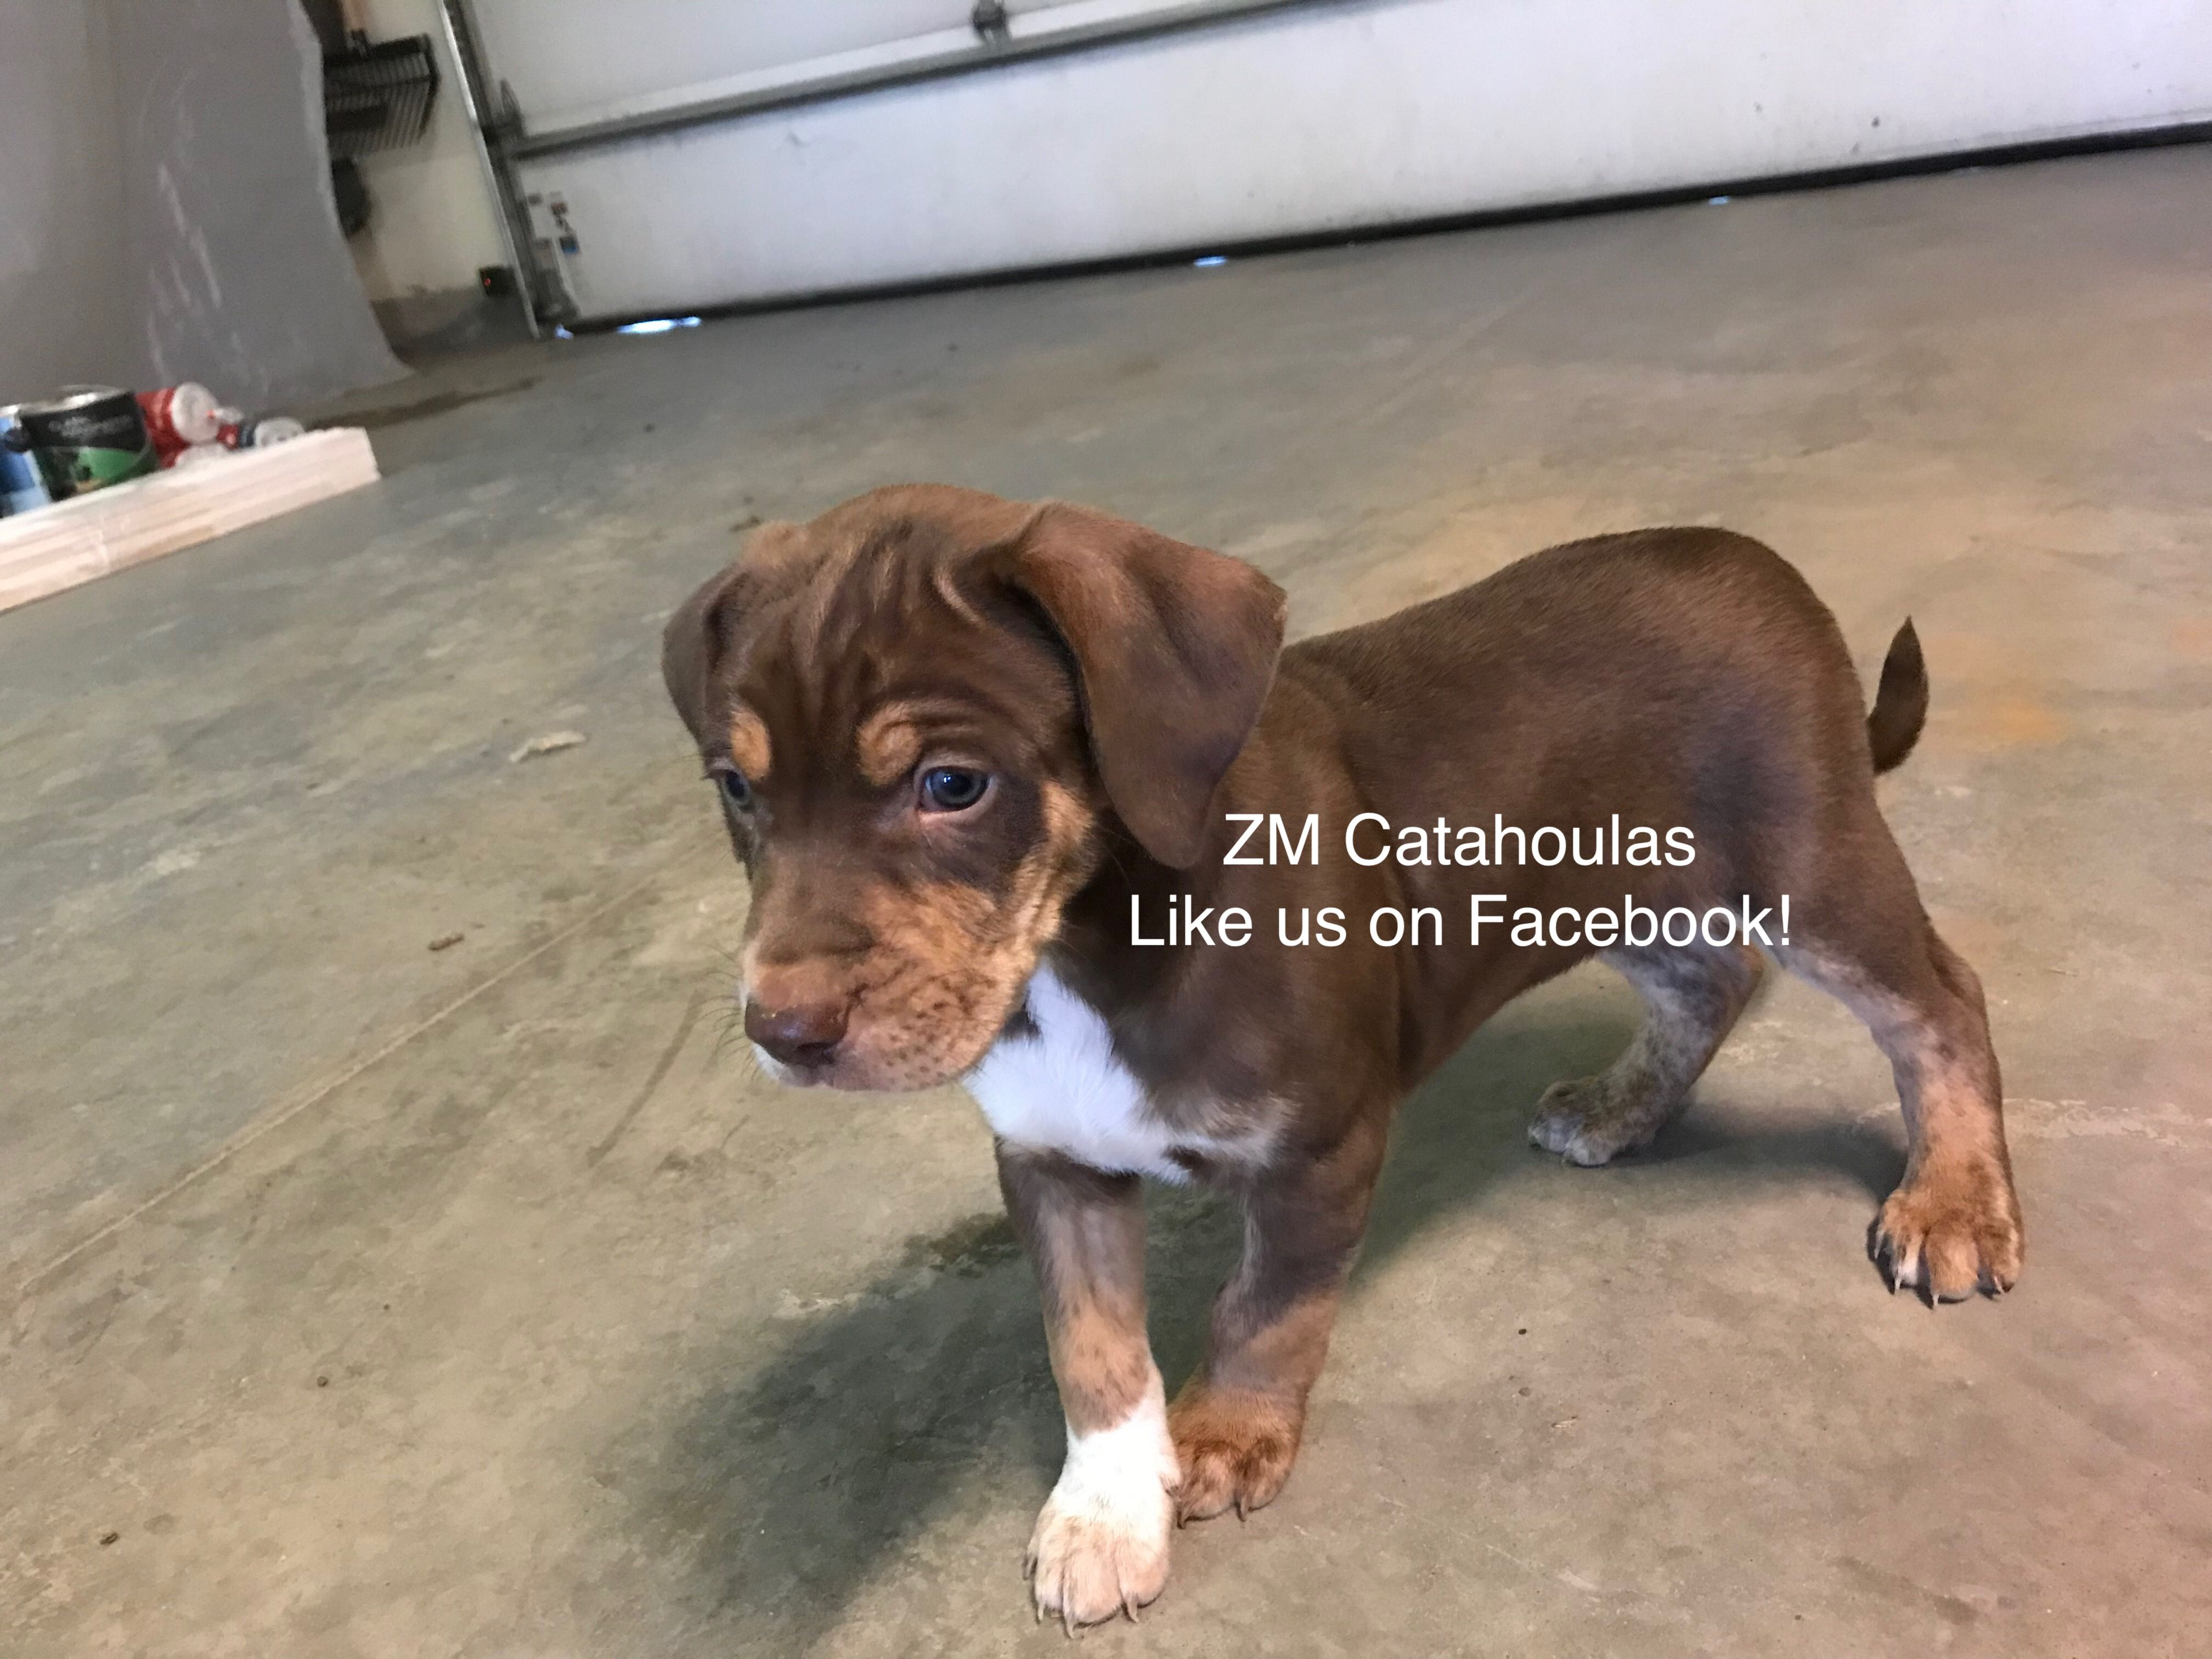 Pin By Makayla Hornung On Zm Louisiana Catahoulas With Images Dogs Animals Louisiana